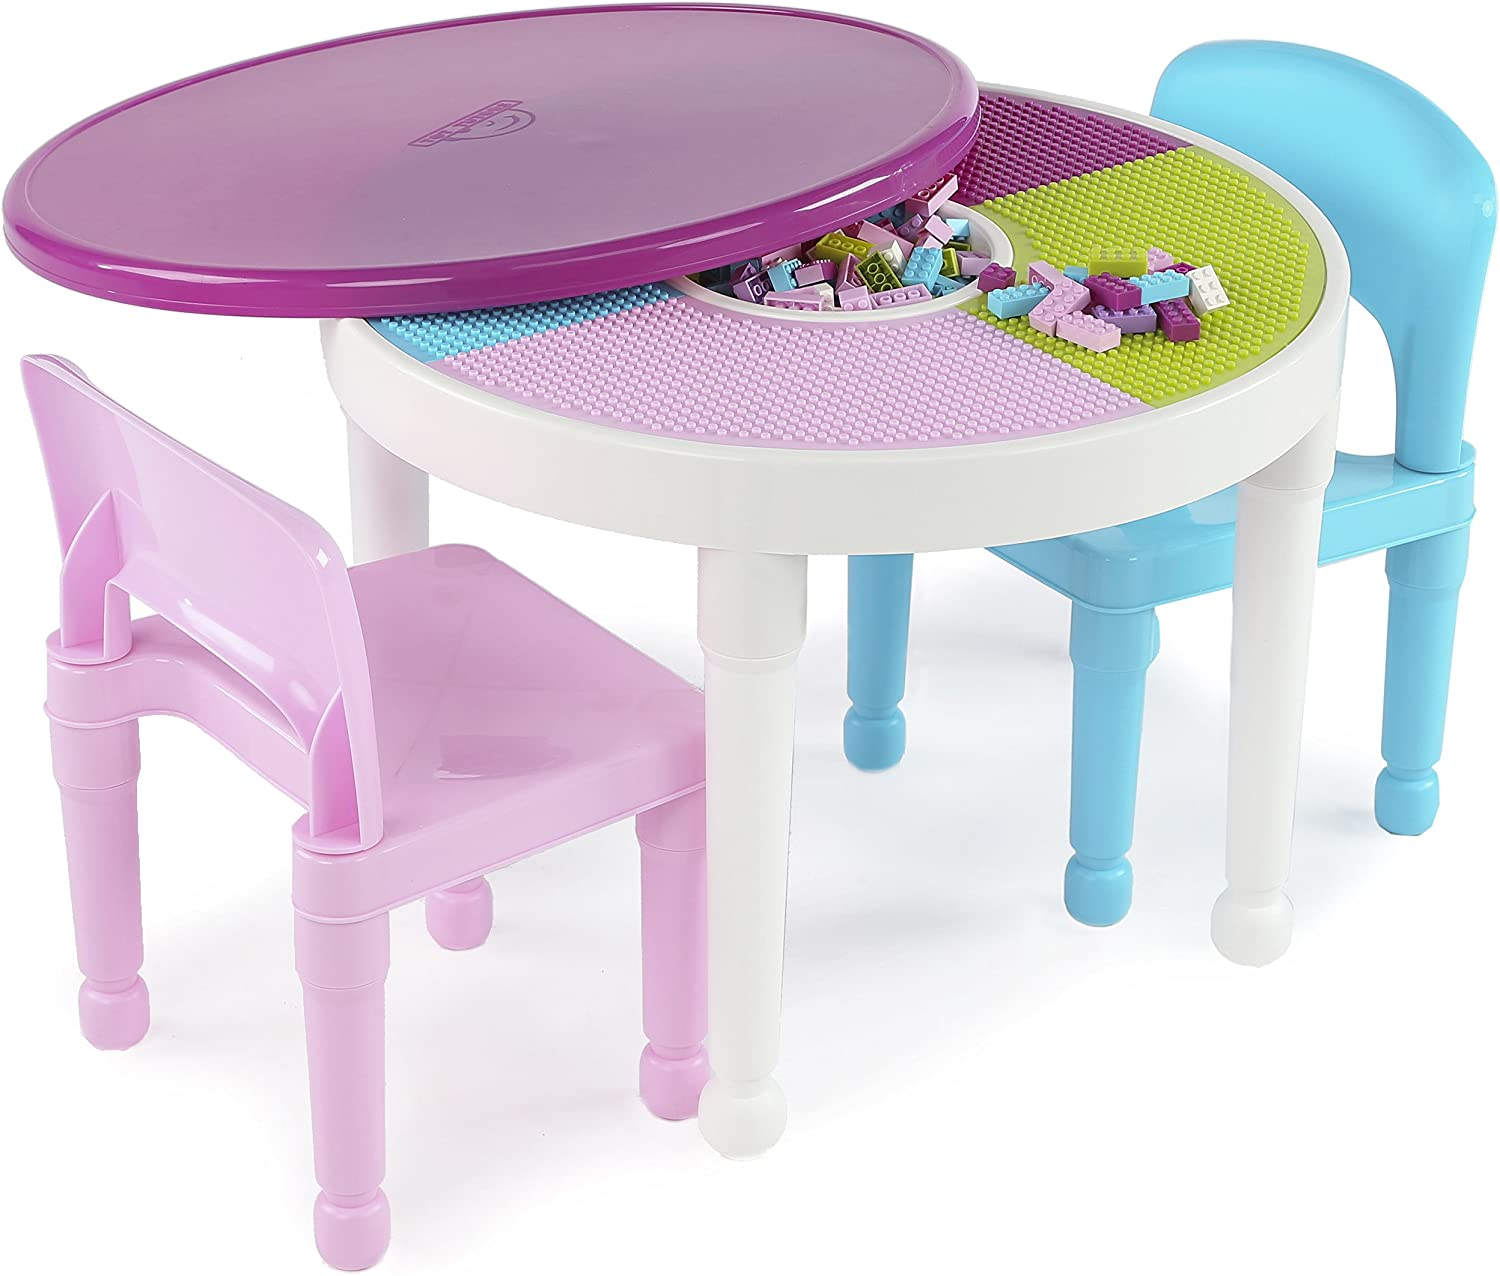 Tot Tutors Kids 2in1 Plastic Building BlocksCompatible Activity Table and 2 Chairs Set, Round, Pink Light bluee colors